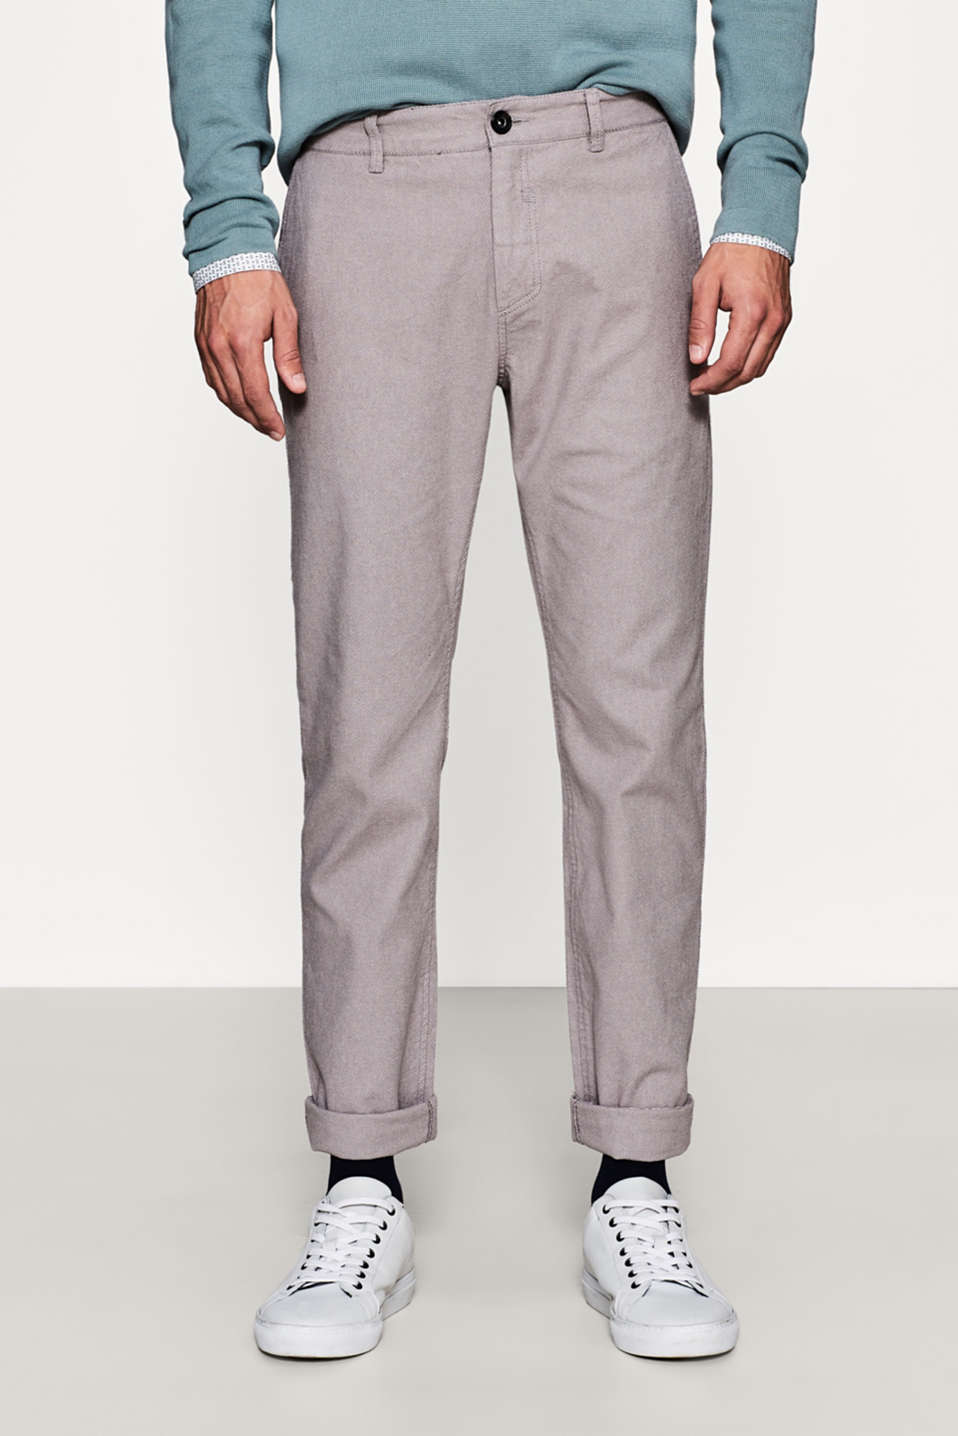 Esprit - Textured stretch cotton chinos